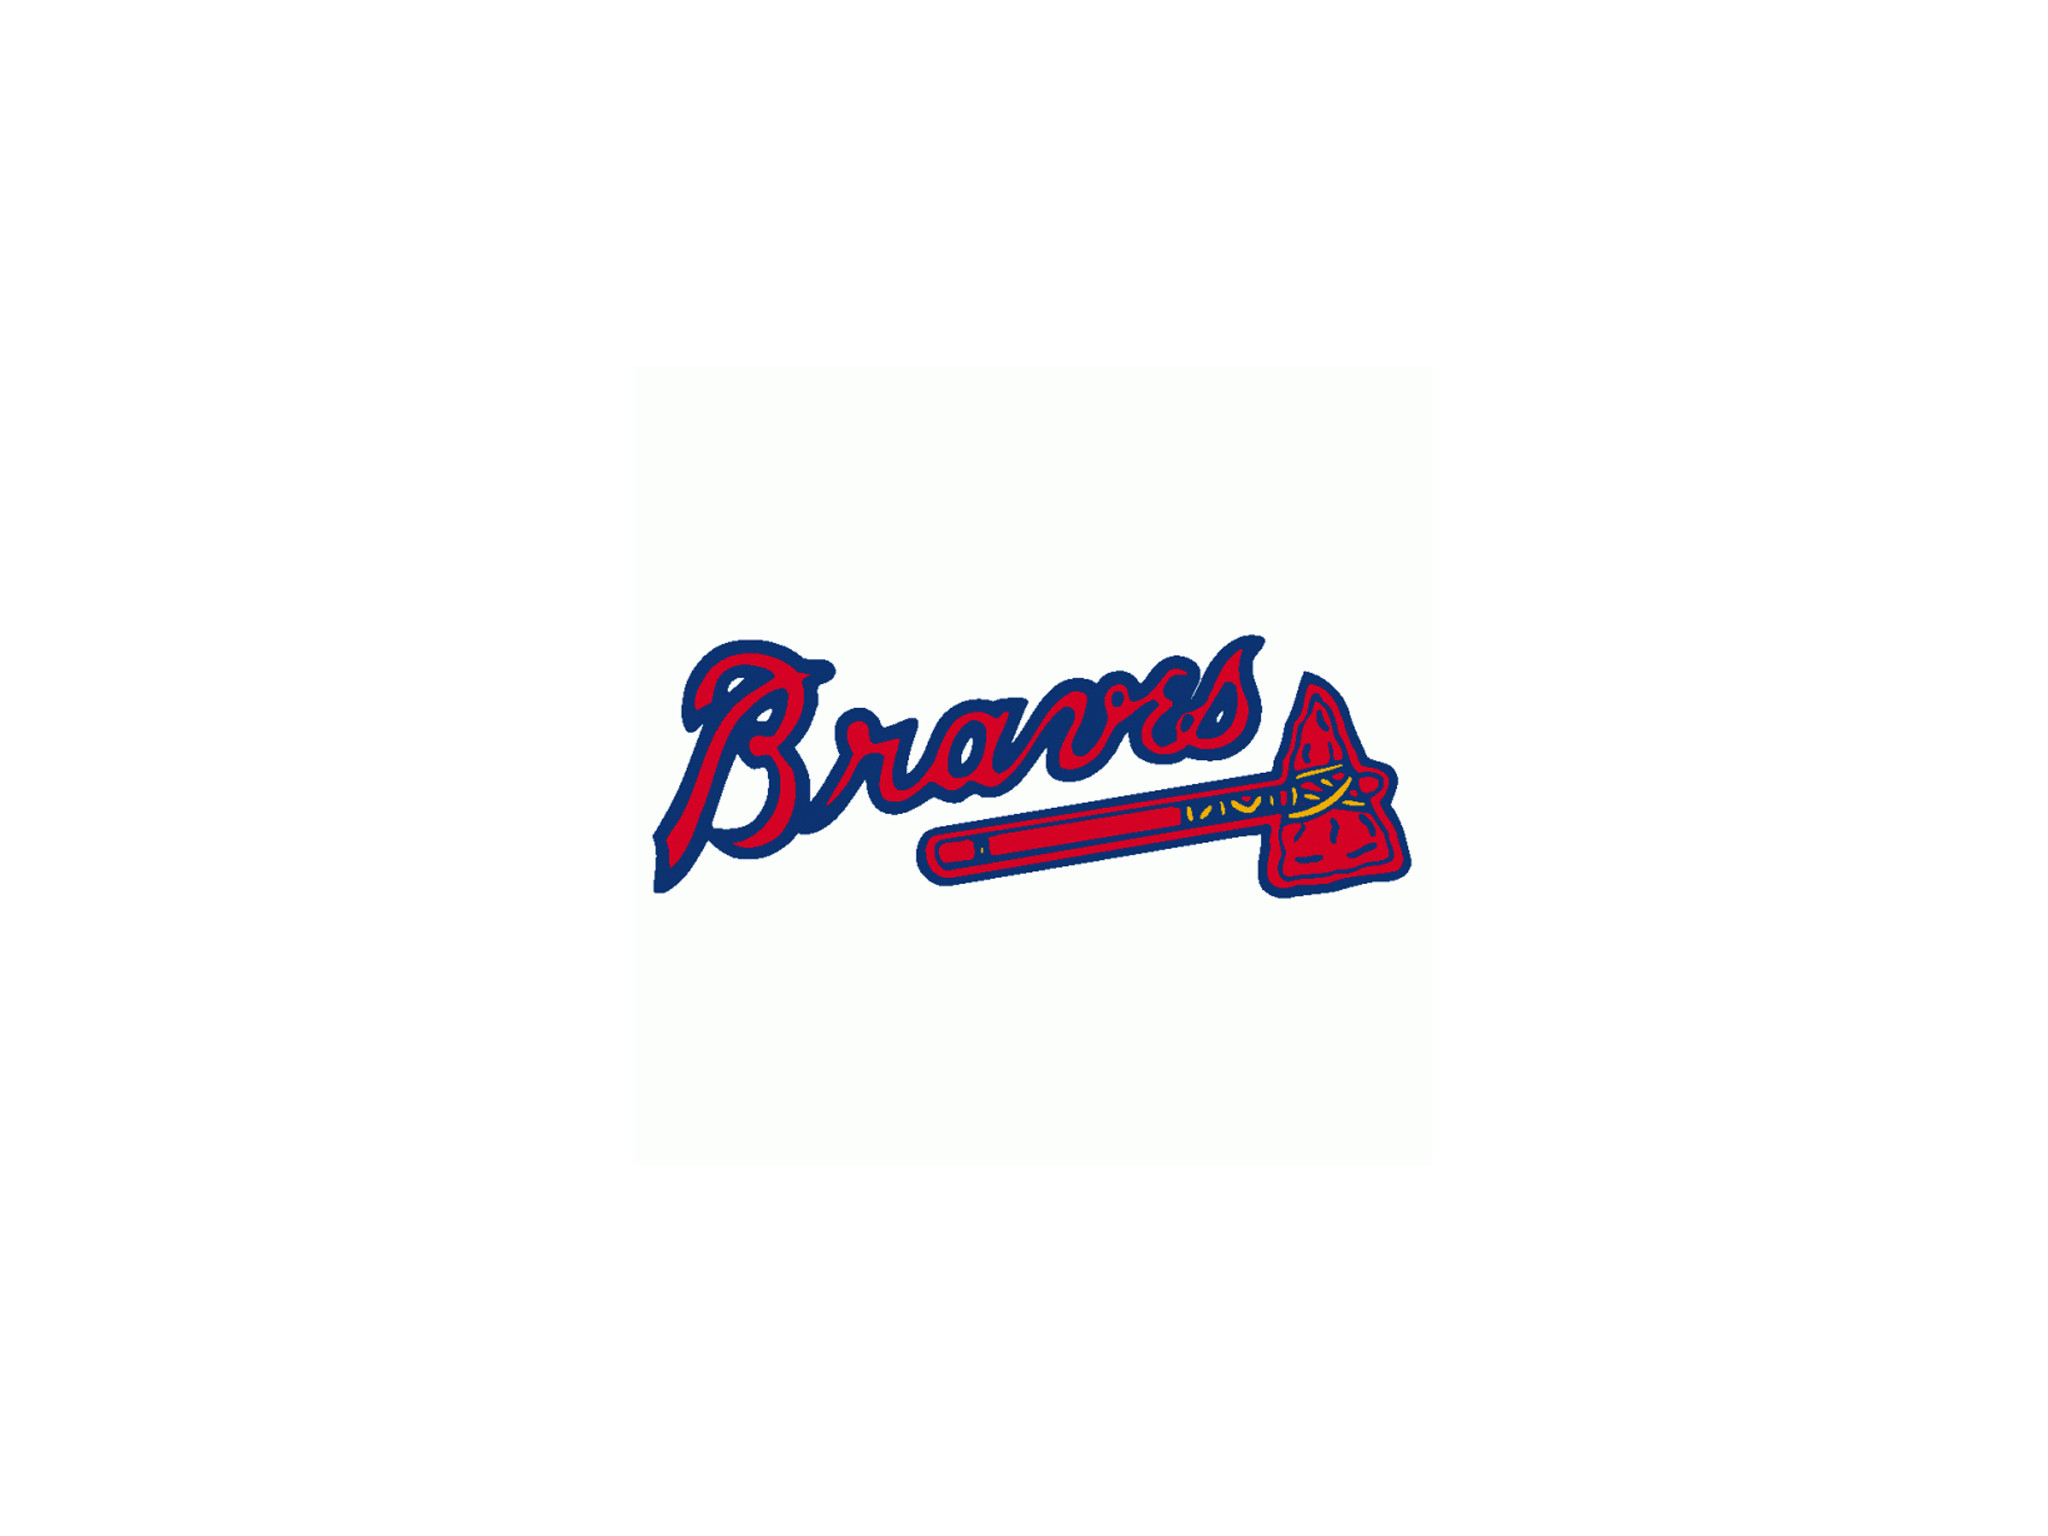 Braves Iphone Wallpaper 59 Images